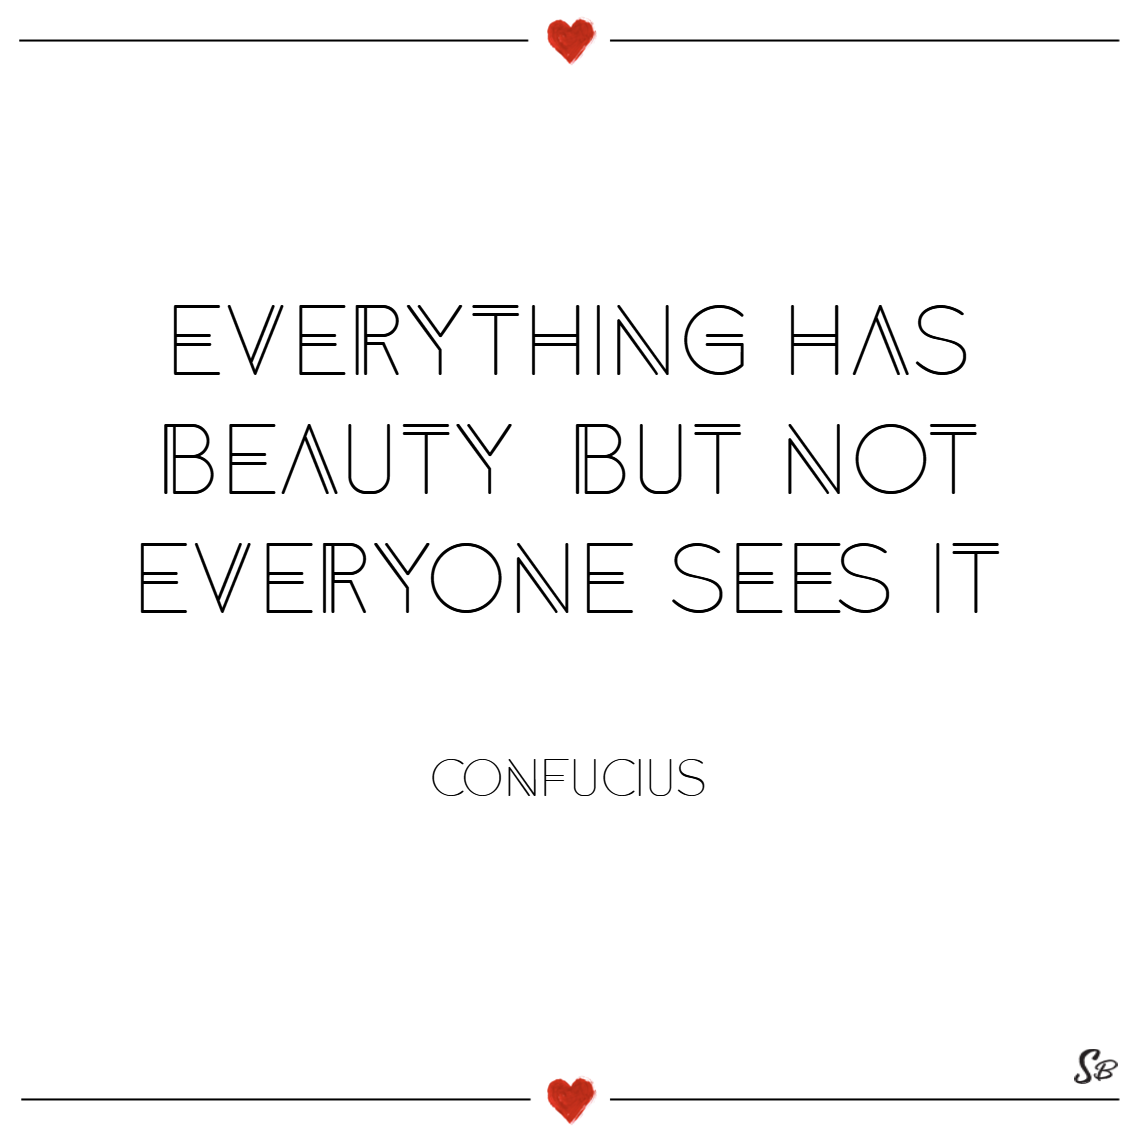 Everything has beauty, but not everyone sees it. – confucius Beauty quotes